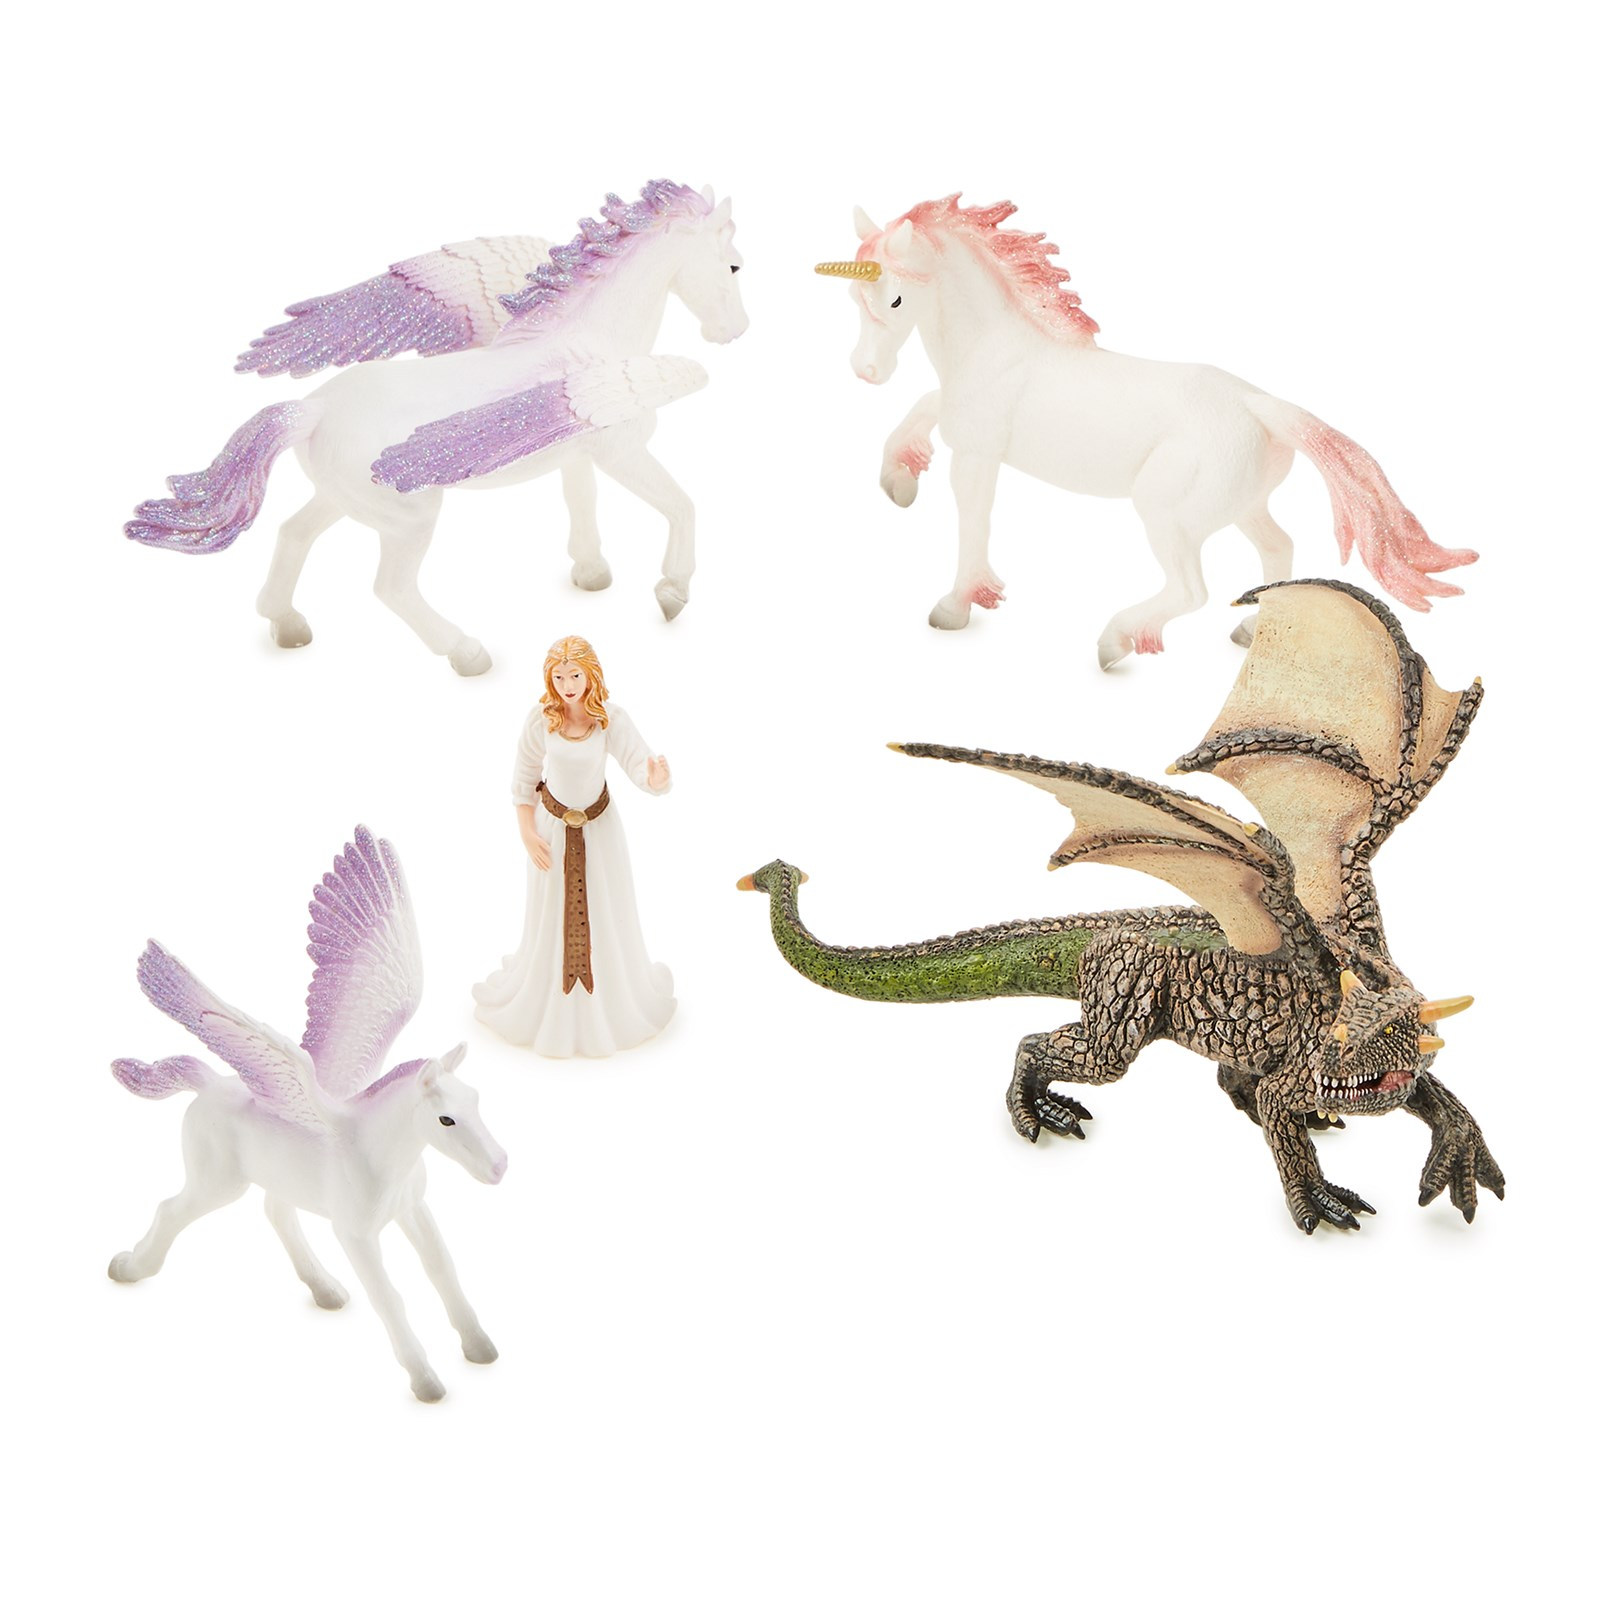 Mythical Creatures Set from Hope Education